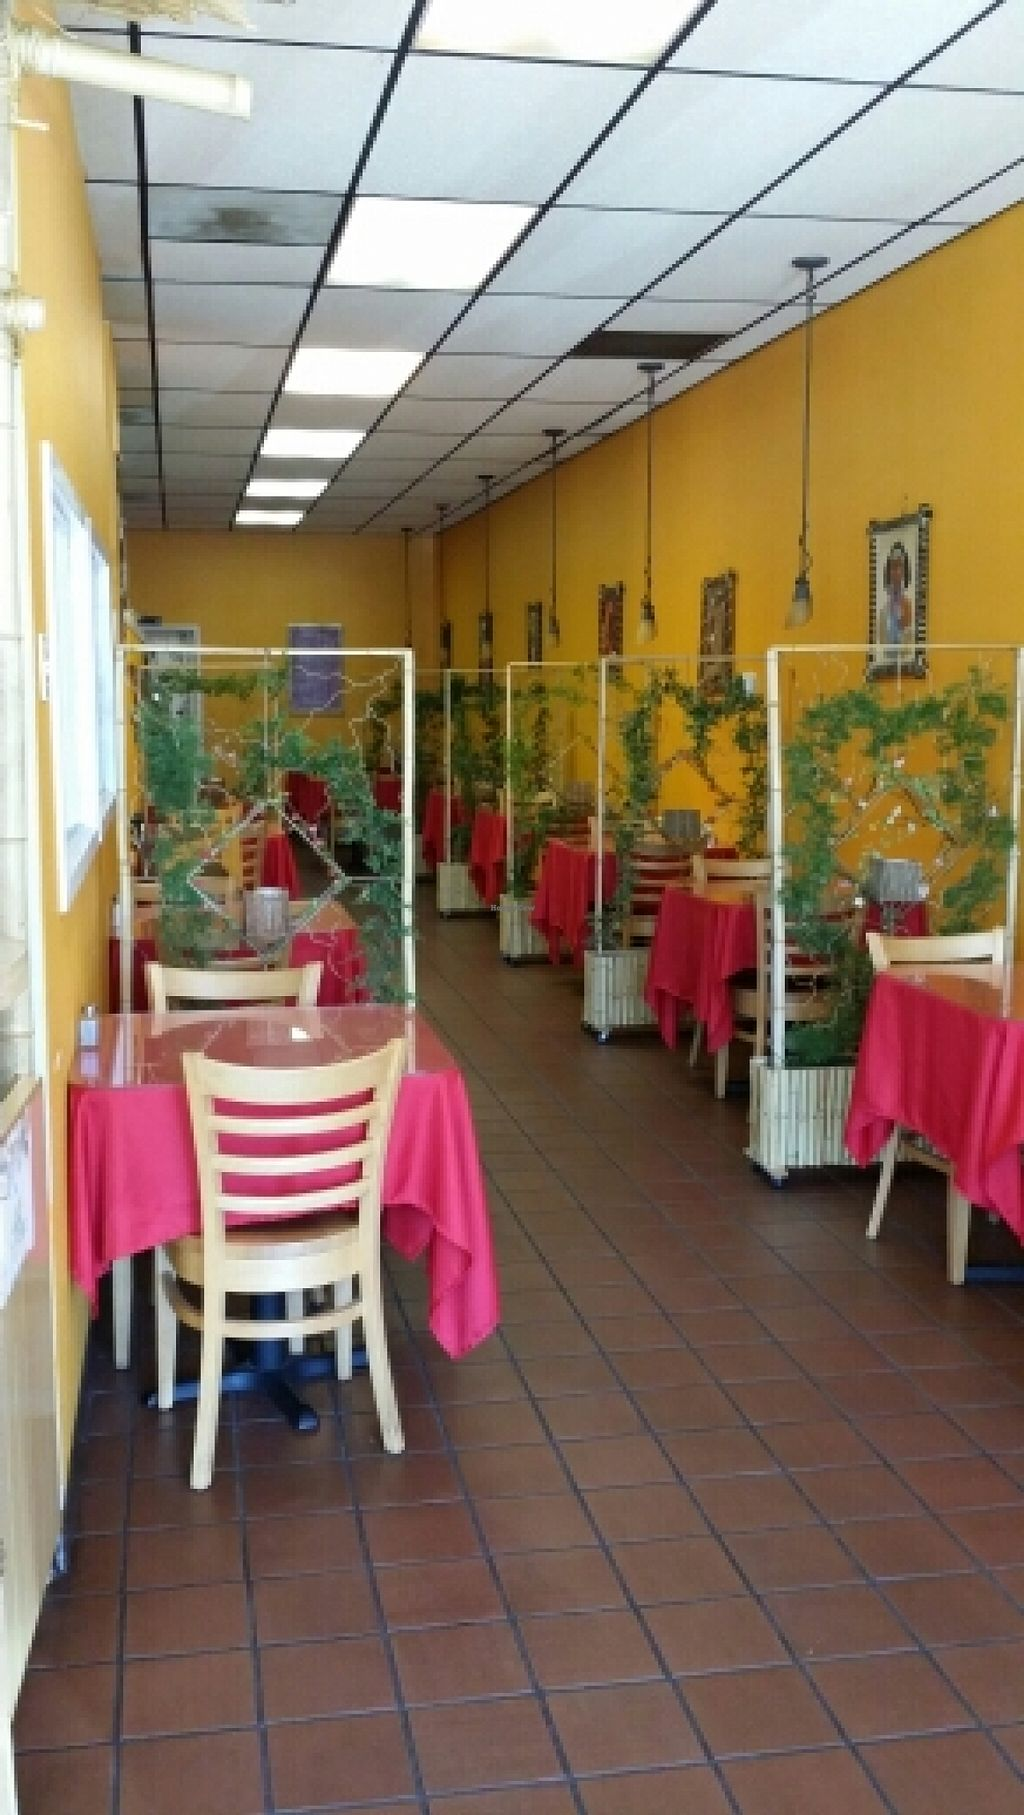 """Photo of Abyssinia Restaurant  by <a href=""""/members/profile/catbone"""">catbone</a> <br/>This is the adorable restaurant! <br/> February 15, 2016  - <a href='/contact/abuse/image/48953/136440'>Report</a>"""